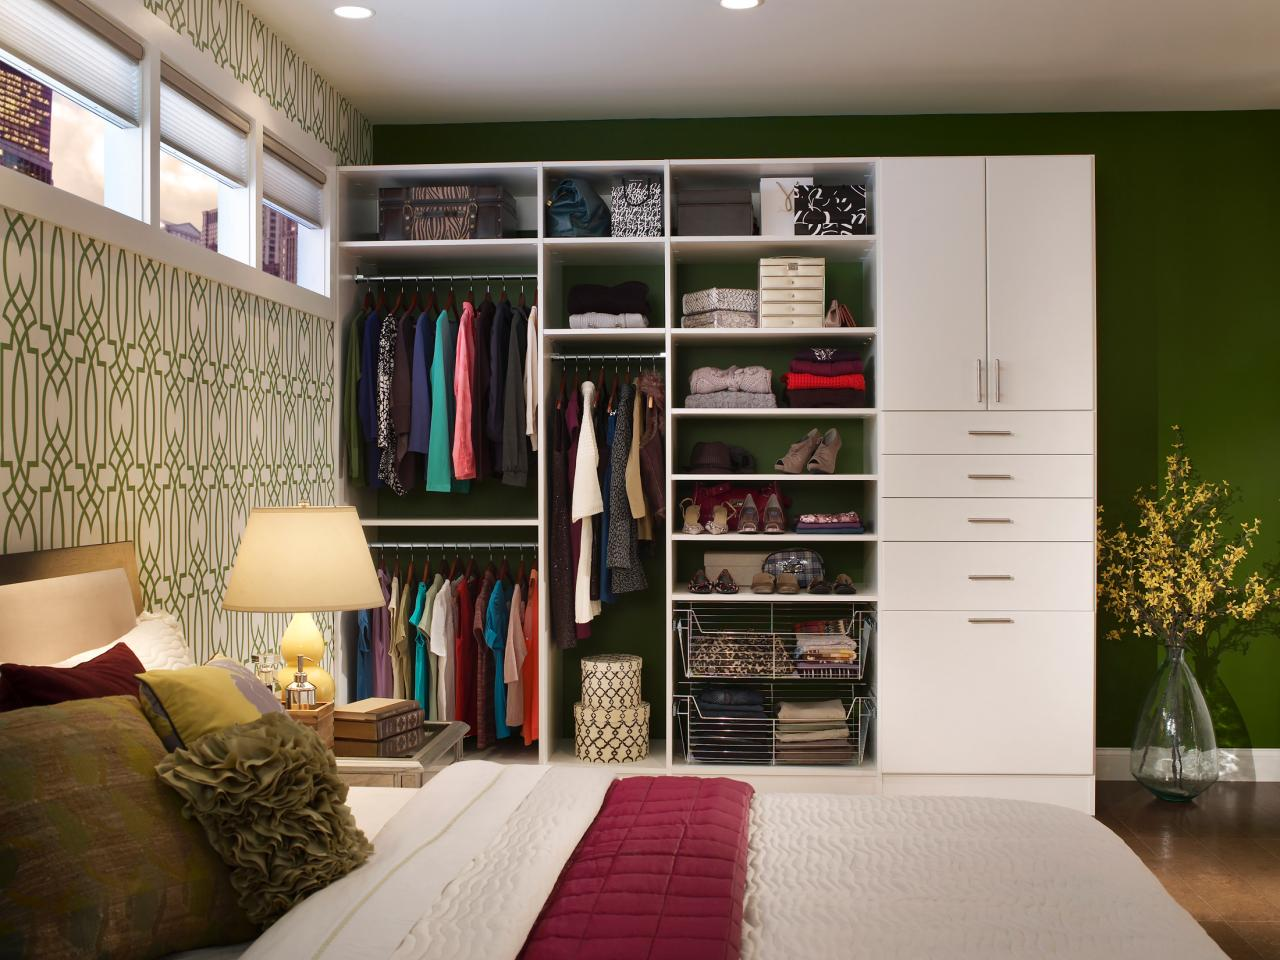 Small Bedroom Wardrobe Solutions 9 Nightstand Alternatives For Small Bedrooms Hgtvs Decorating